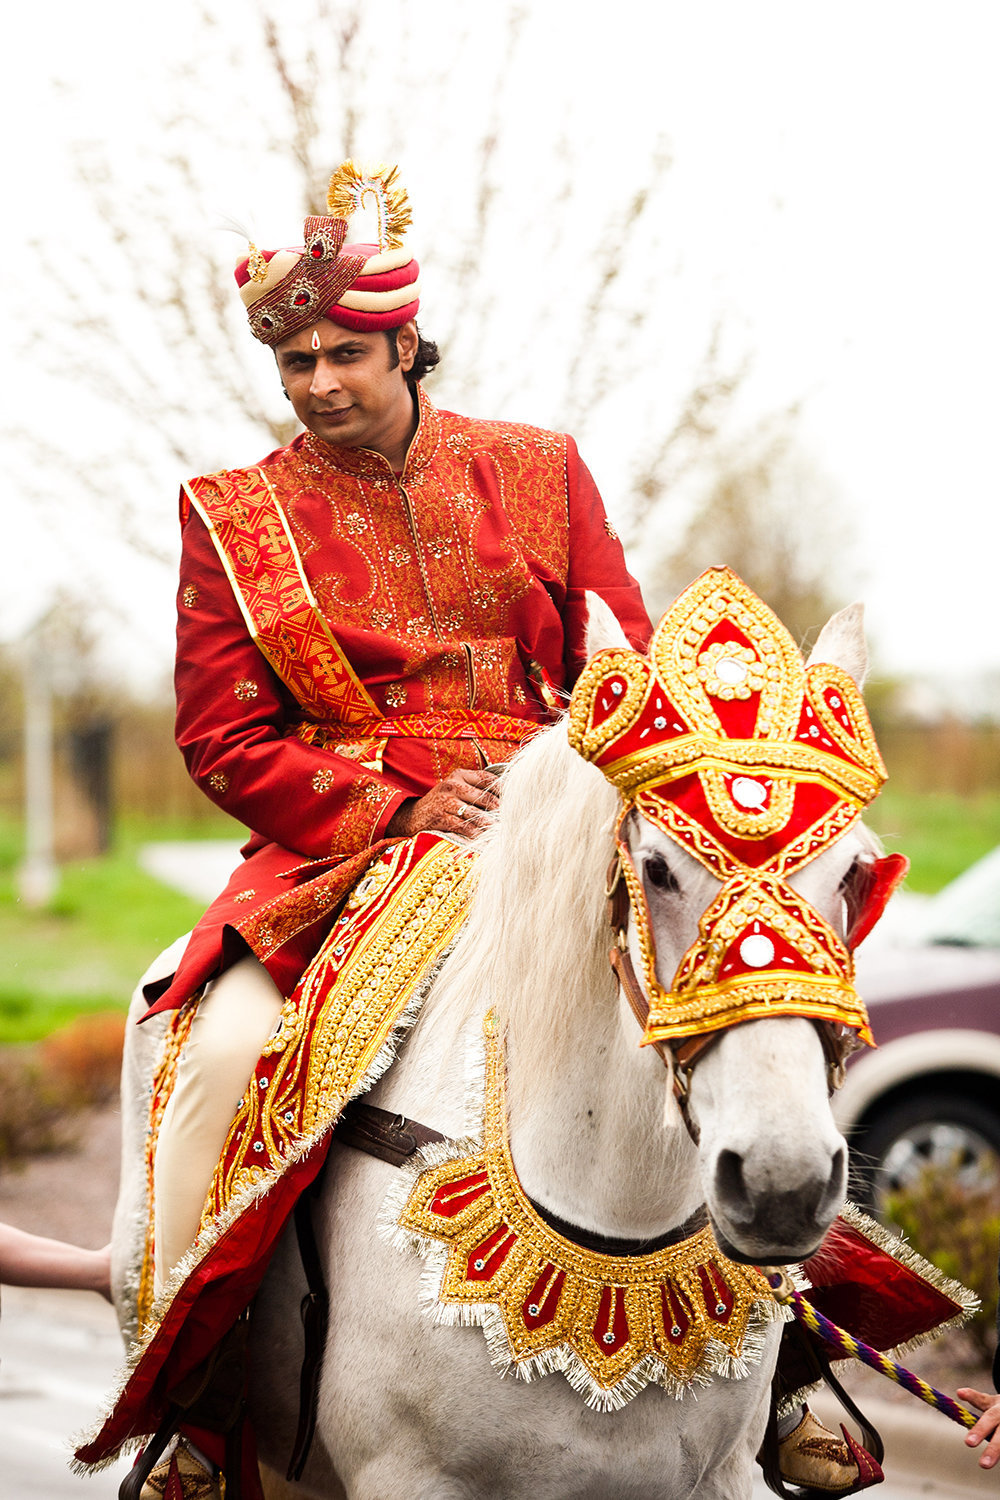 Traditional Hindu Baraat Ceremony with Groom on Horse